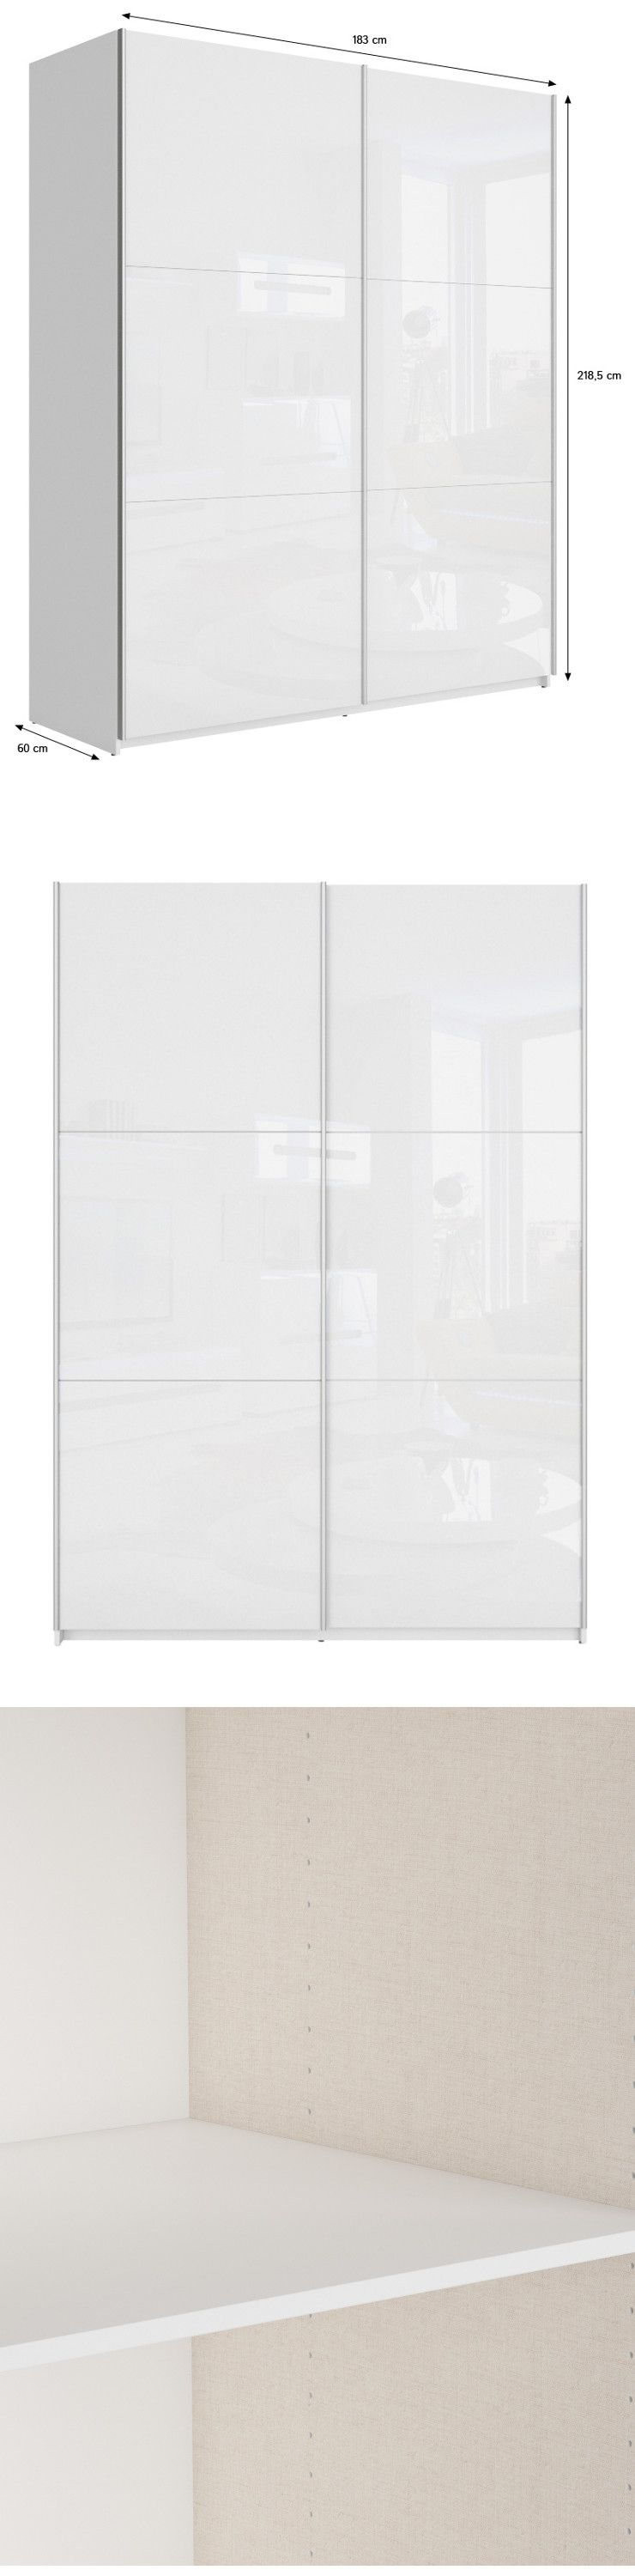 Best armoire chambre adulte style contemporain blanc for Meuble chambre adulte contemporain